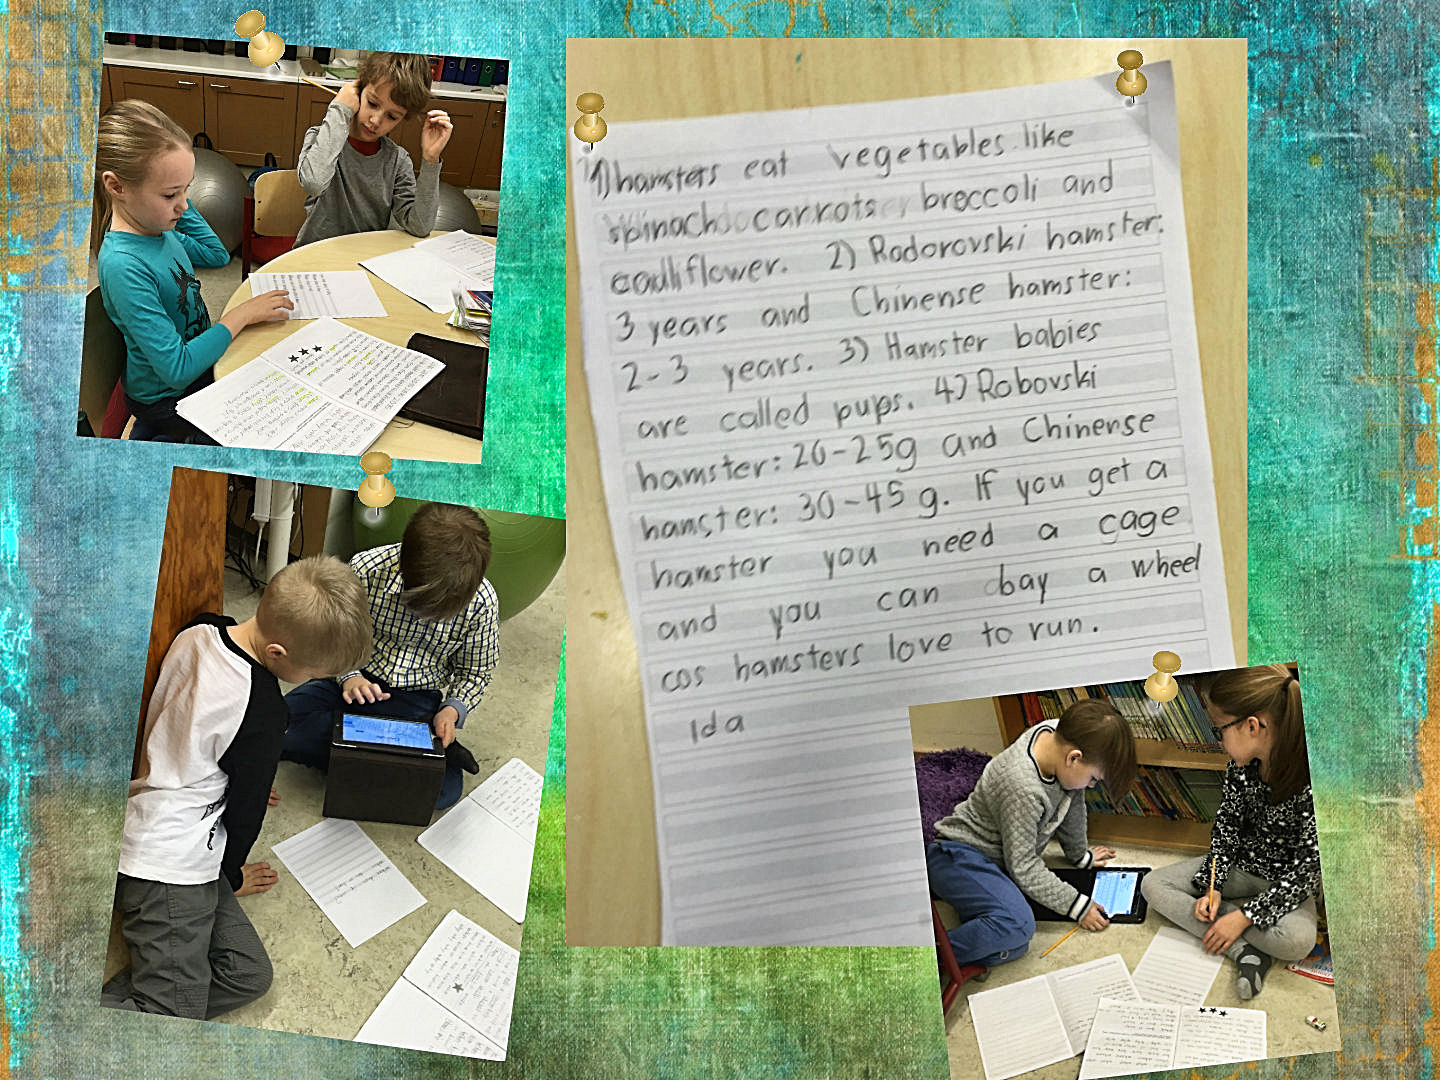 Researching And Writing A Basic Report In Second Grade English Classes At Cygnaeus School